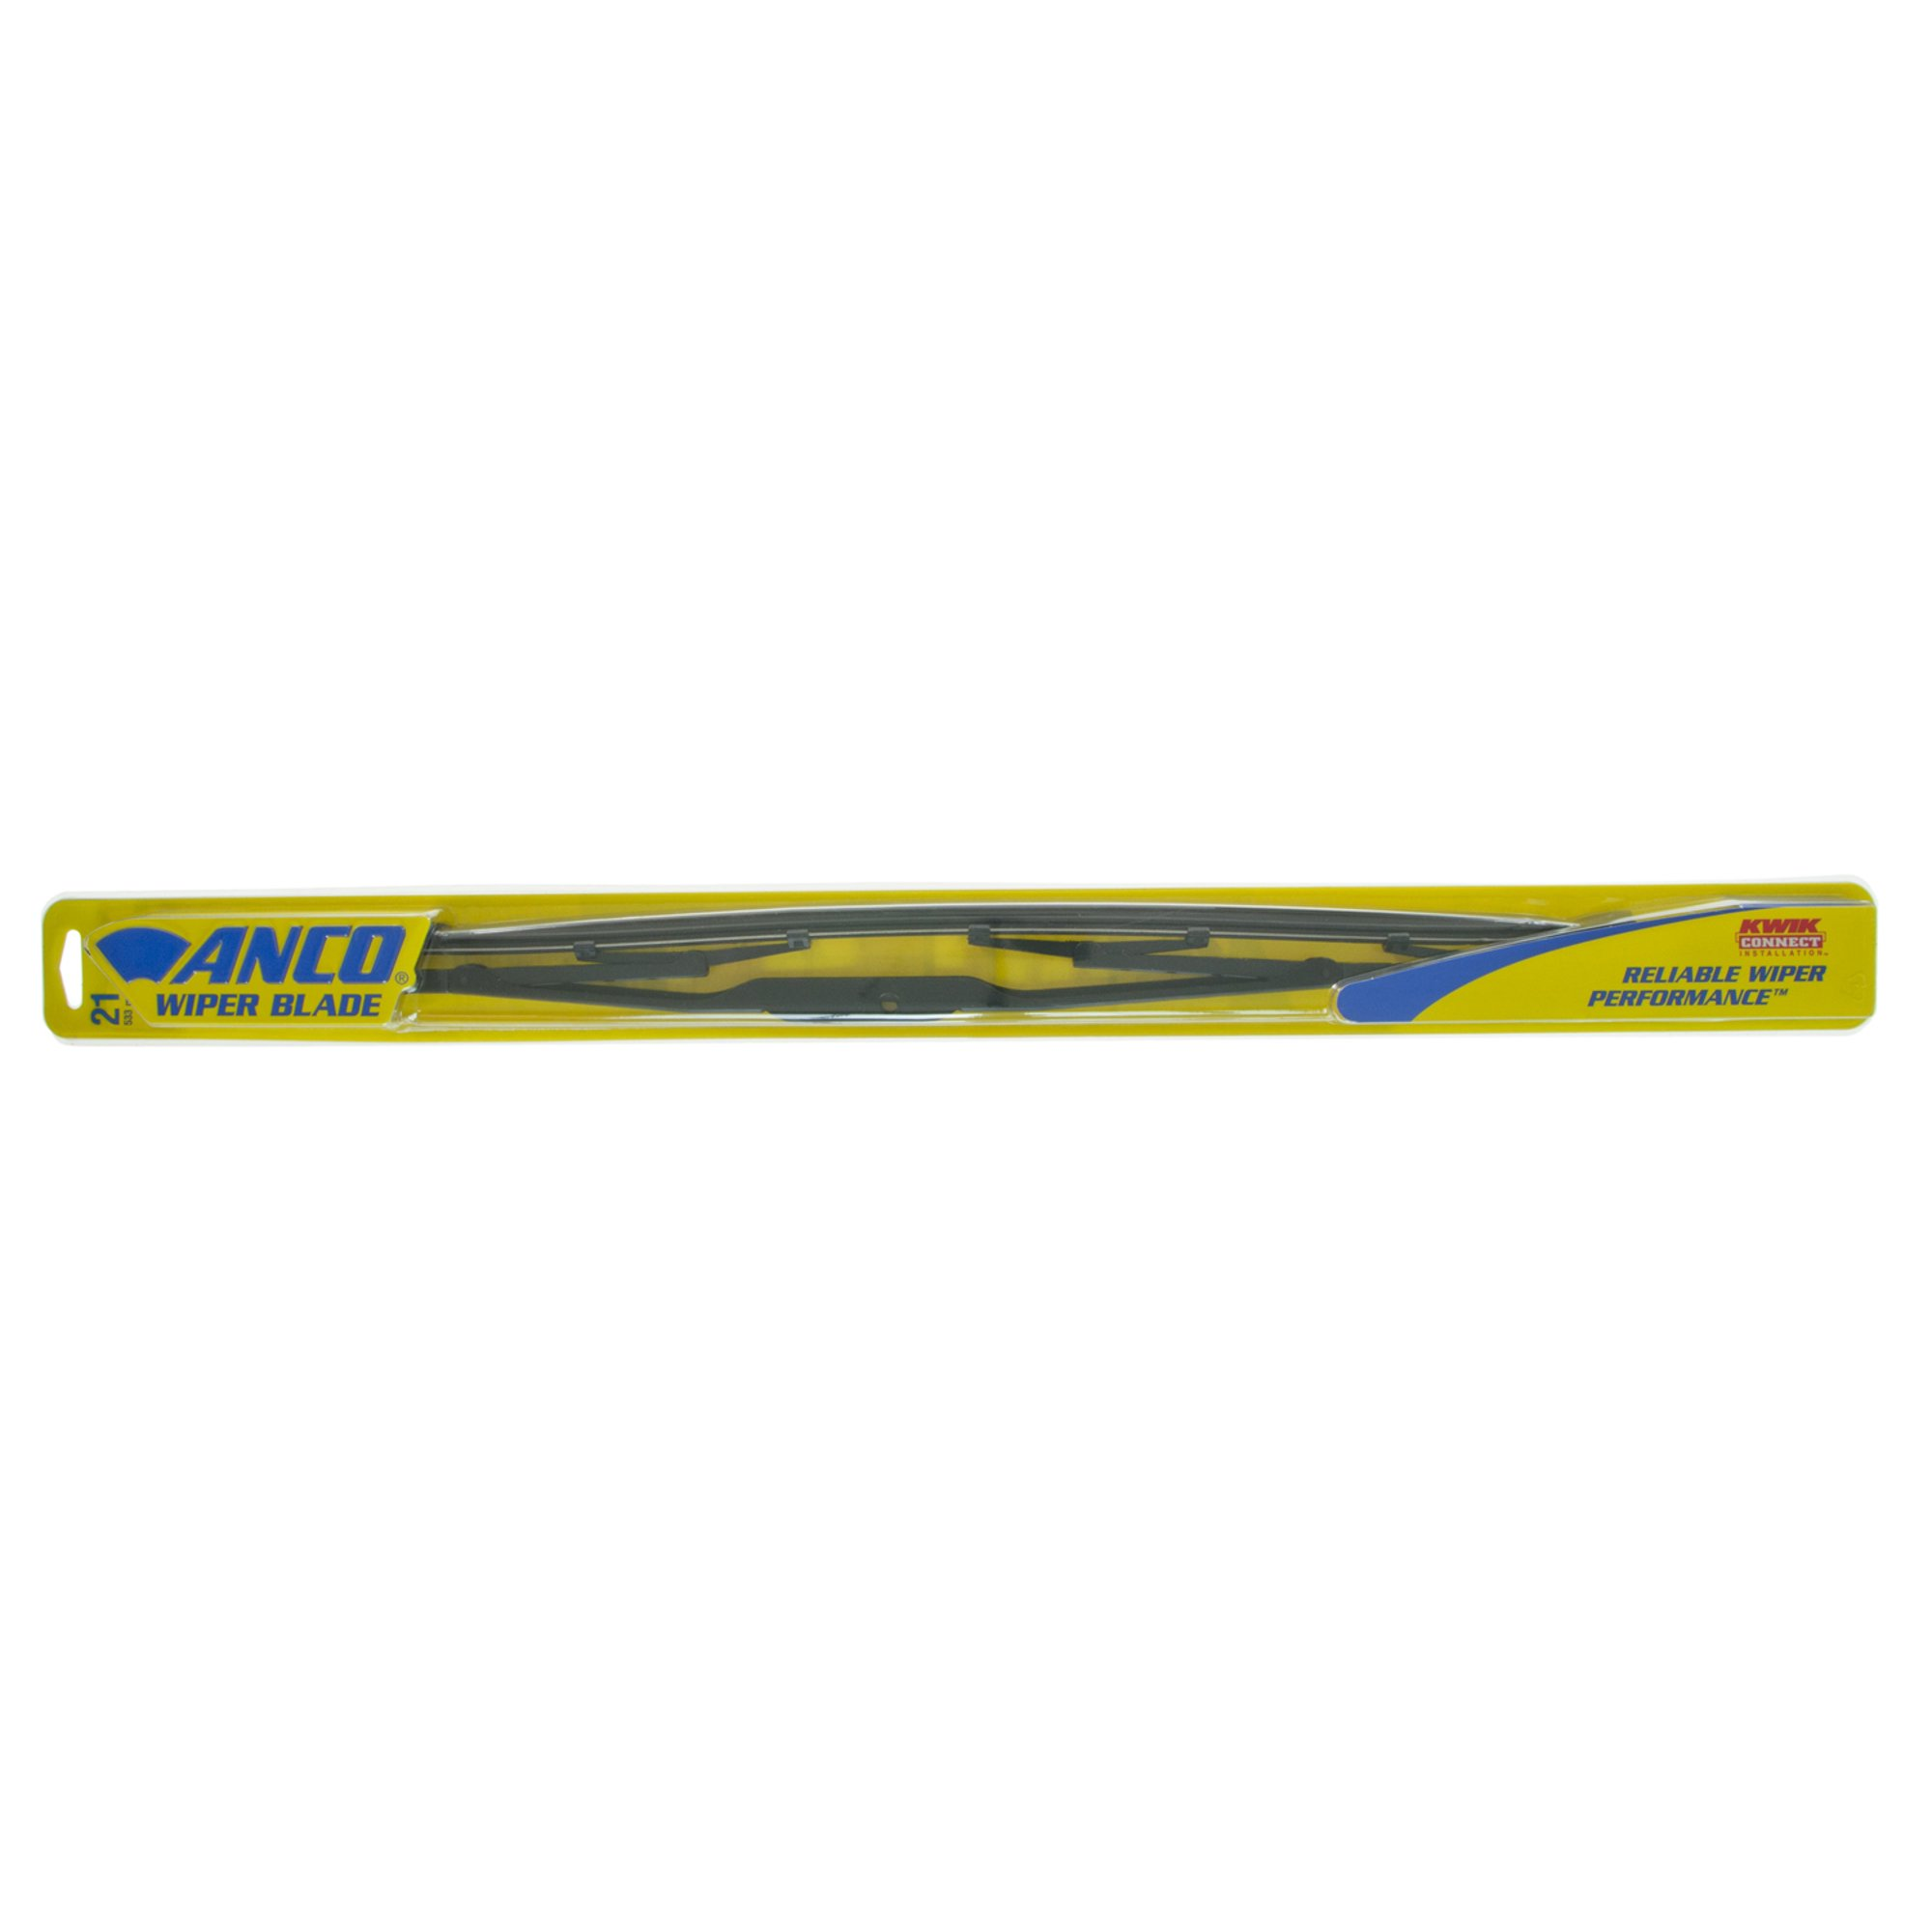 Anco Wiper Blades >> Anco Wipers 31 21 Windshield Wiper Blade 31 Series Oe Replacement